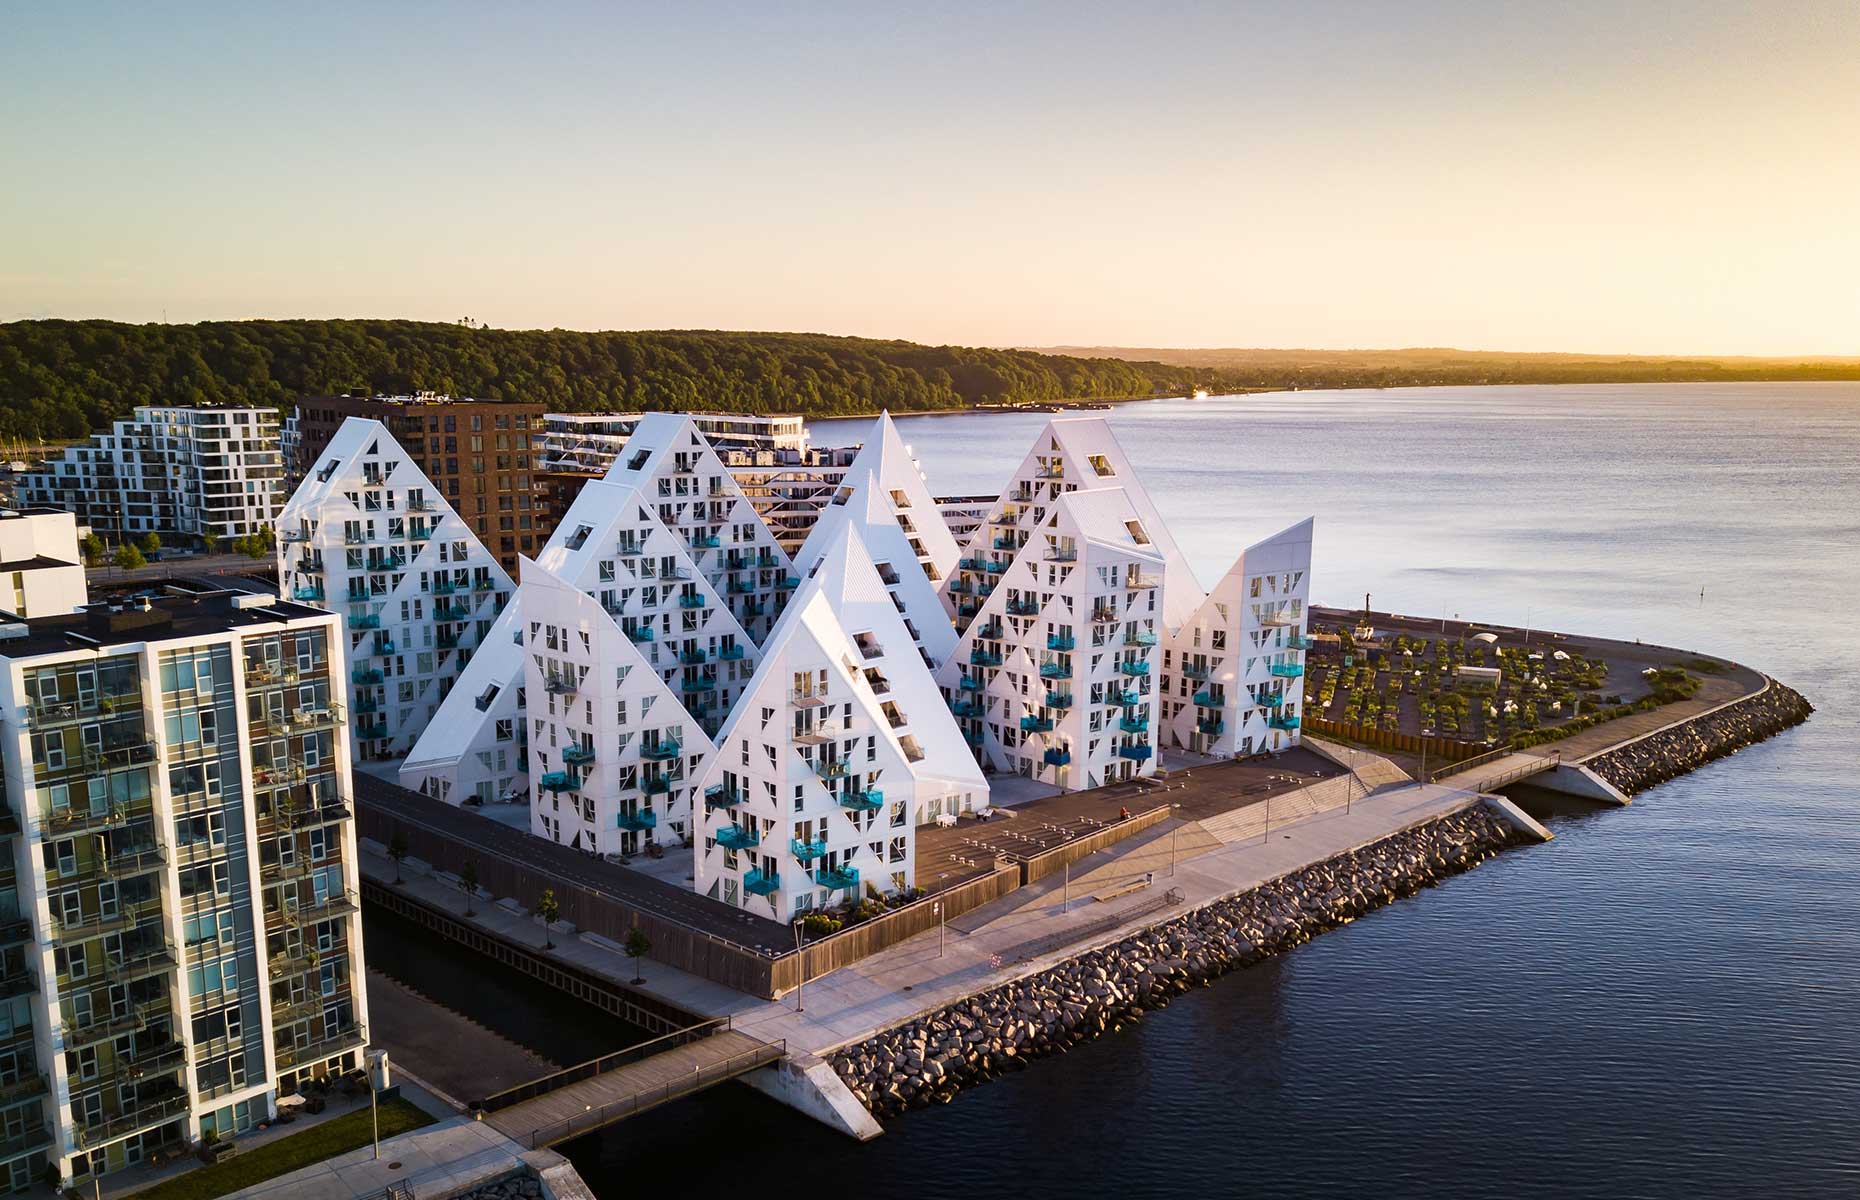 Isbjerget, meaning iceberg, is one of the latest housing developments in Aarhus and an architectural icon